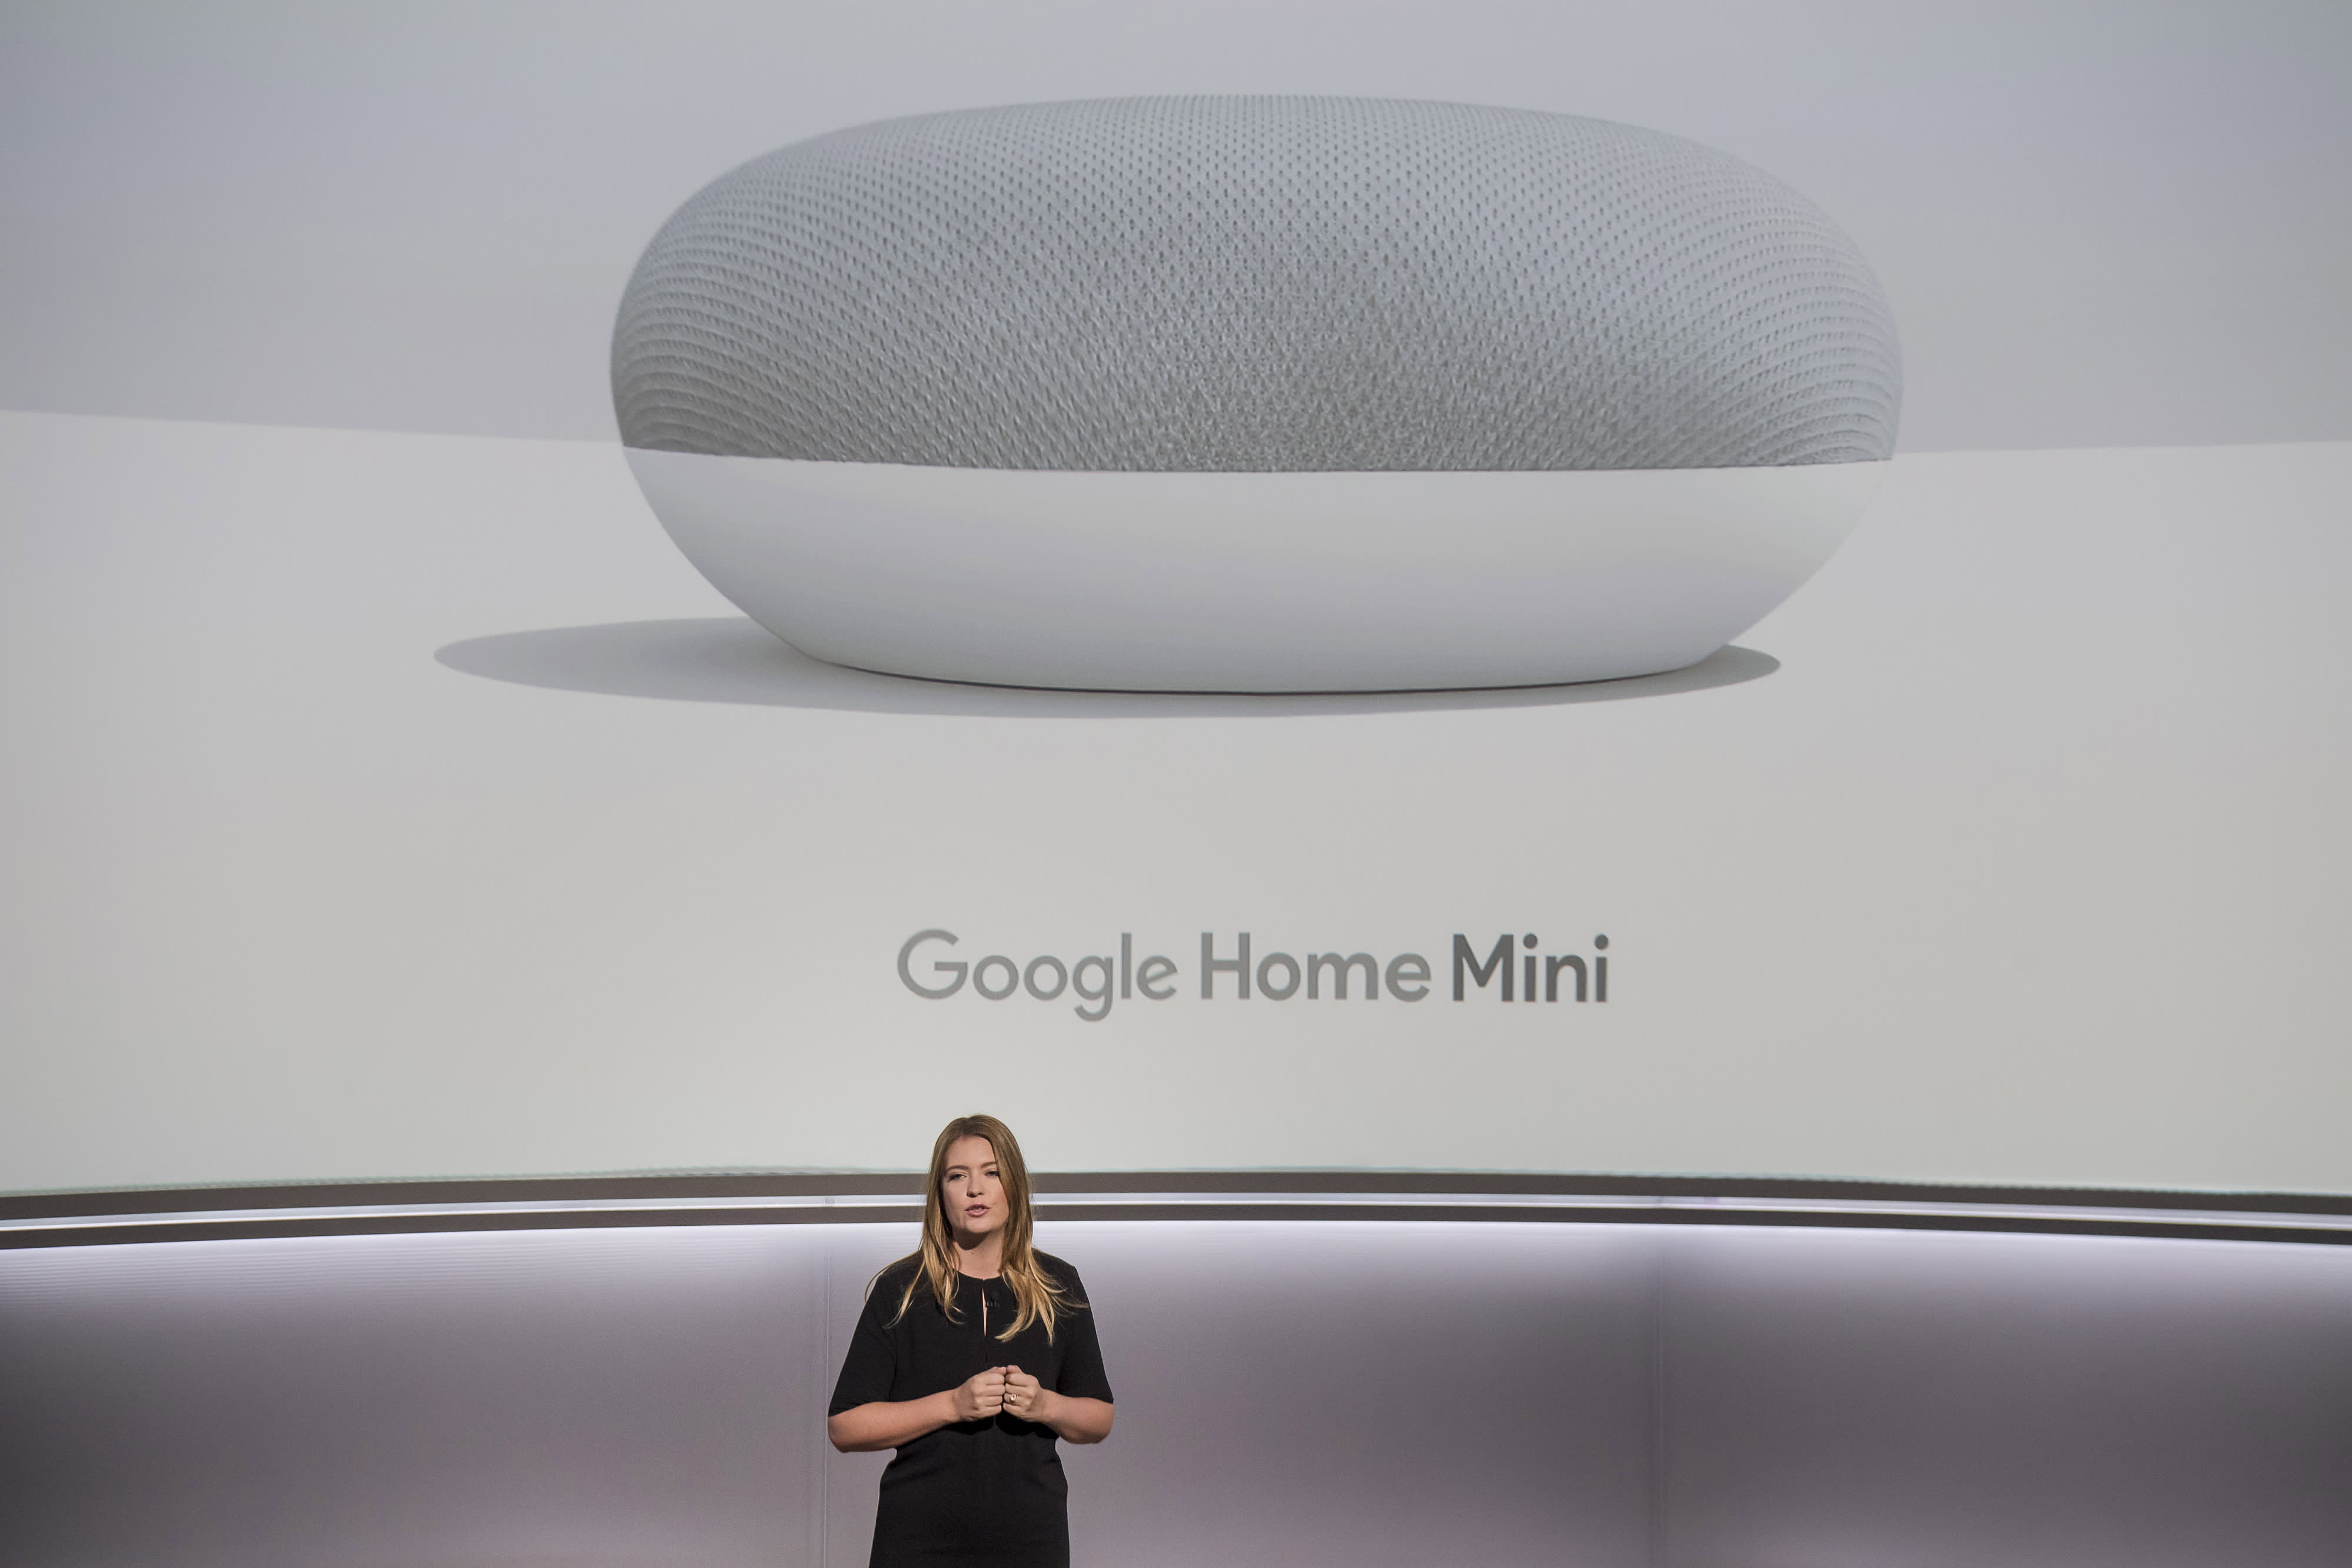 Morgan Stanley: Google should give out free smart speakers to beat